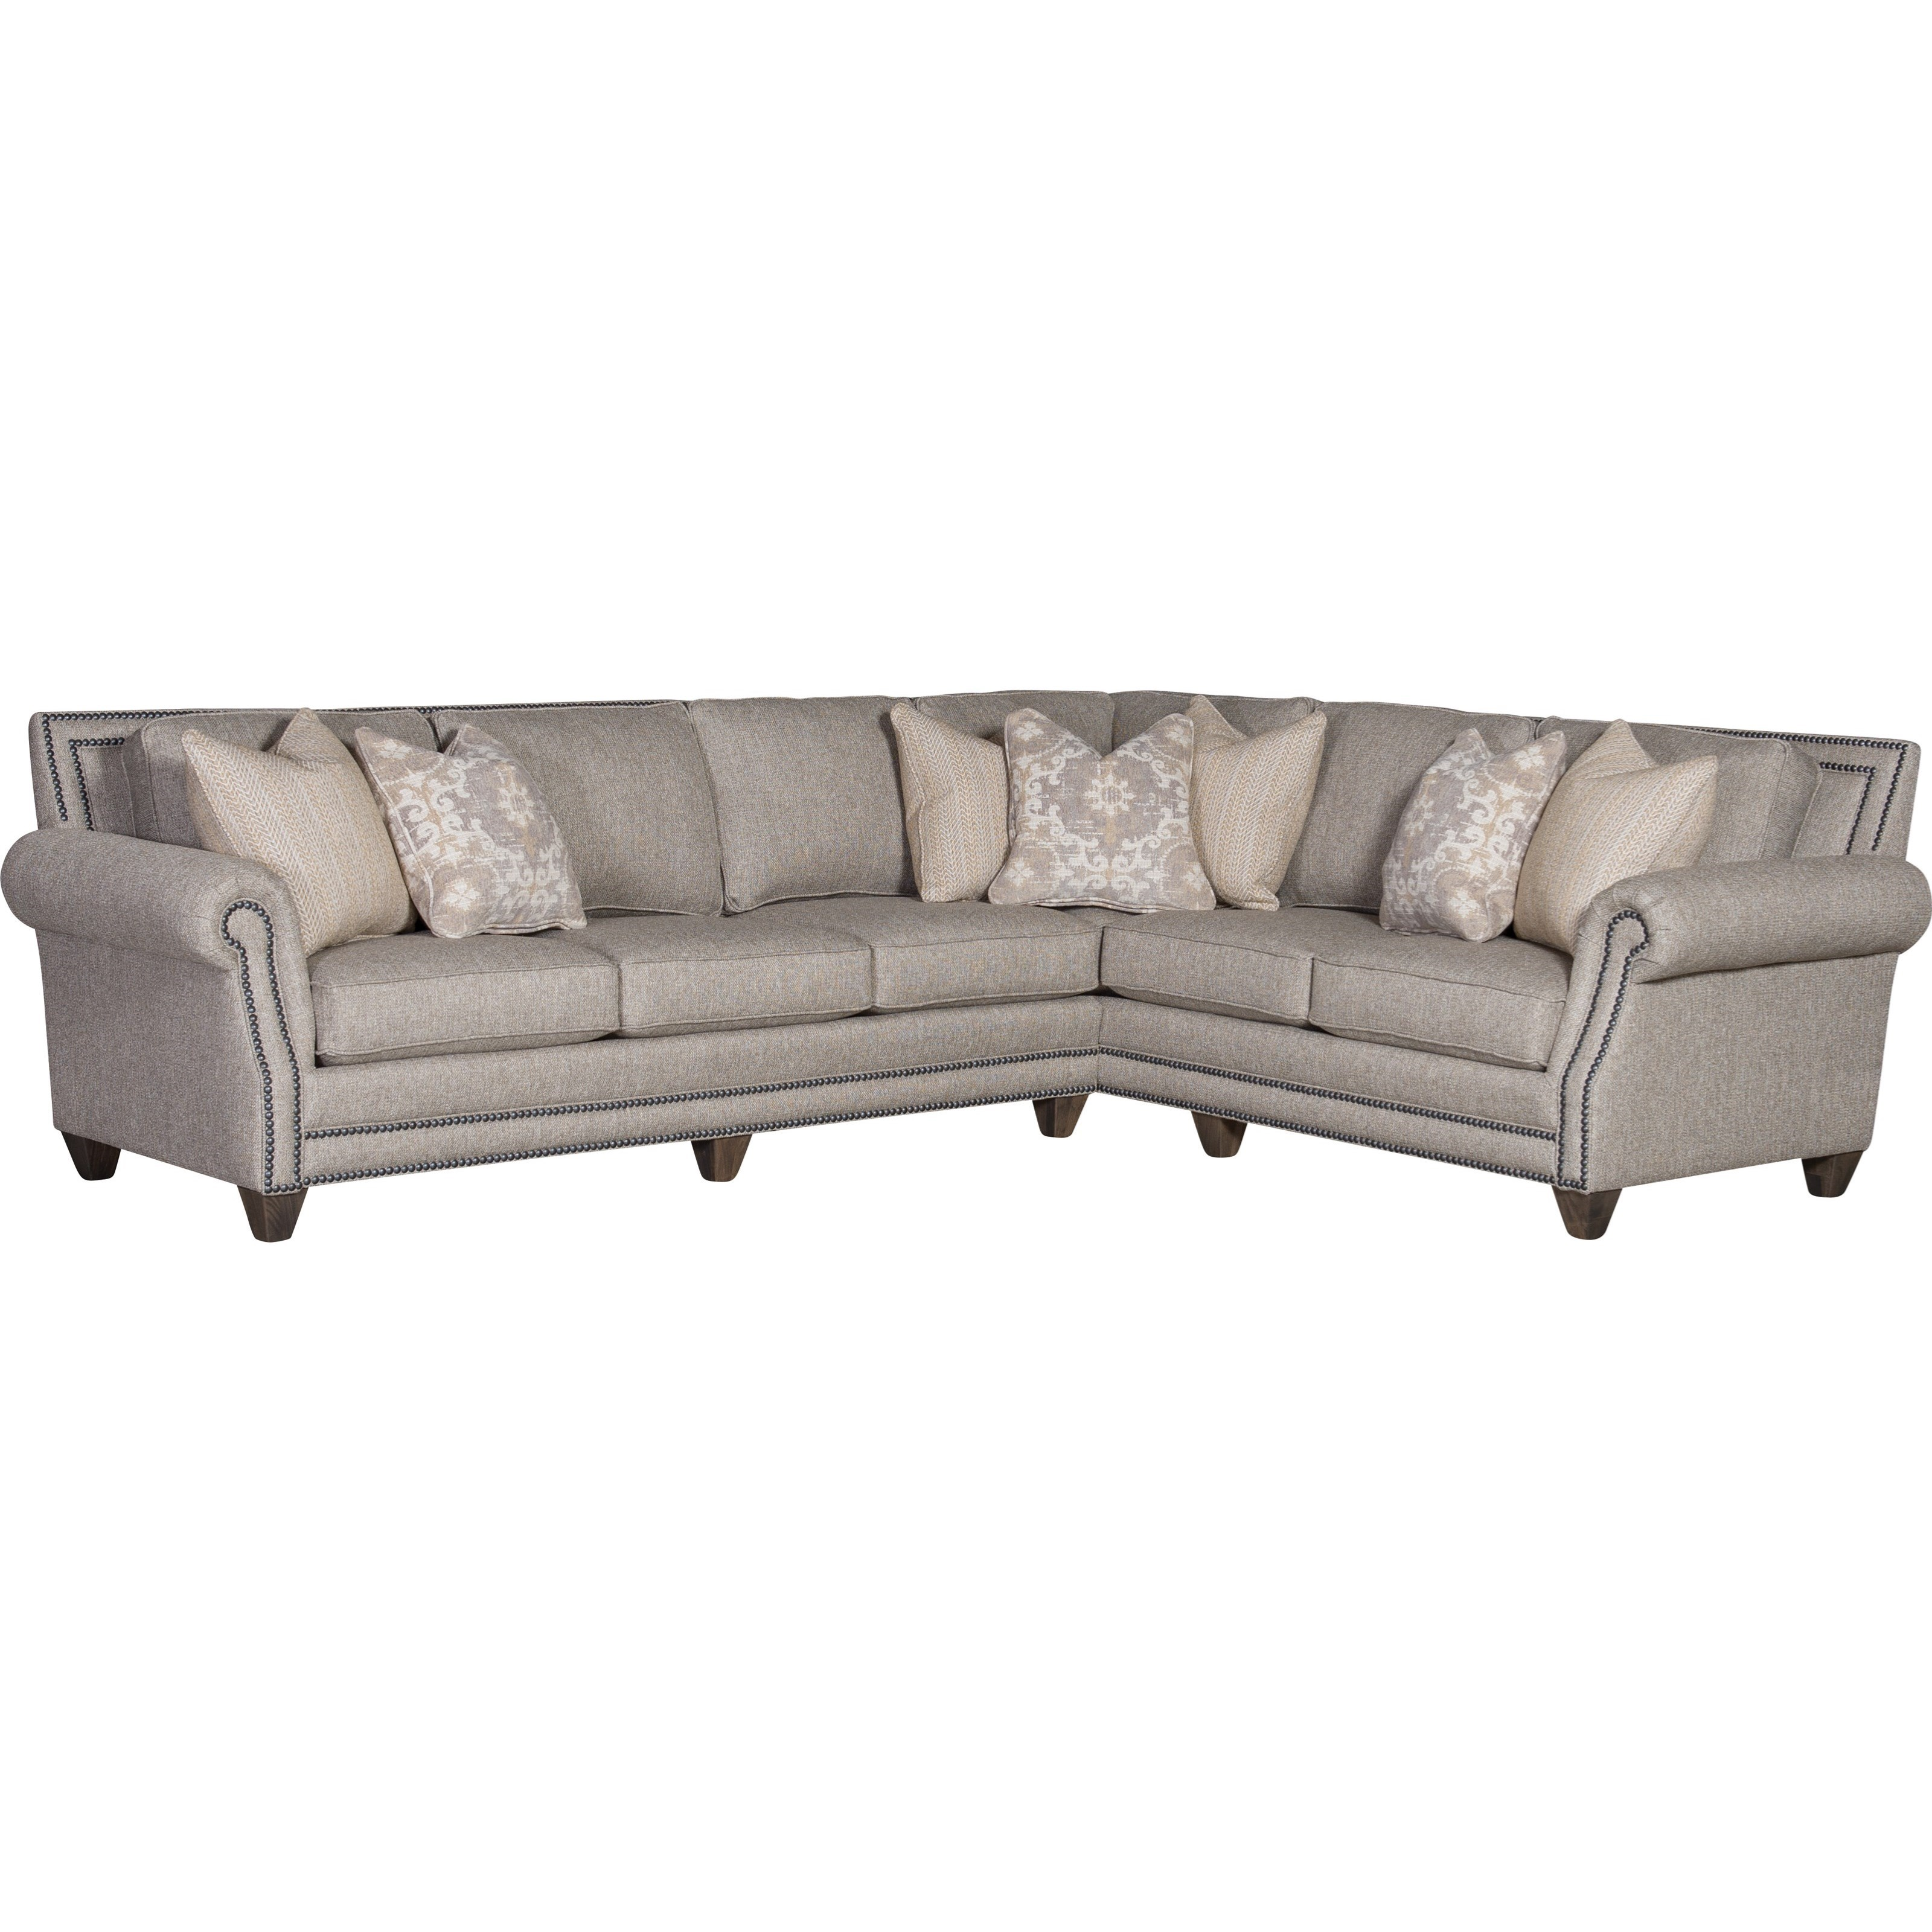 Mayo 9000 2-Piece Sectional with RAF Corner Sofa | Howell Furniture ...